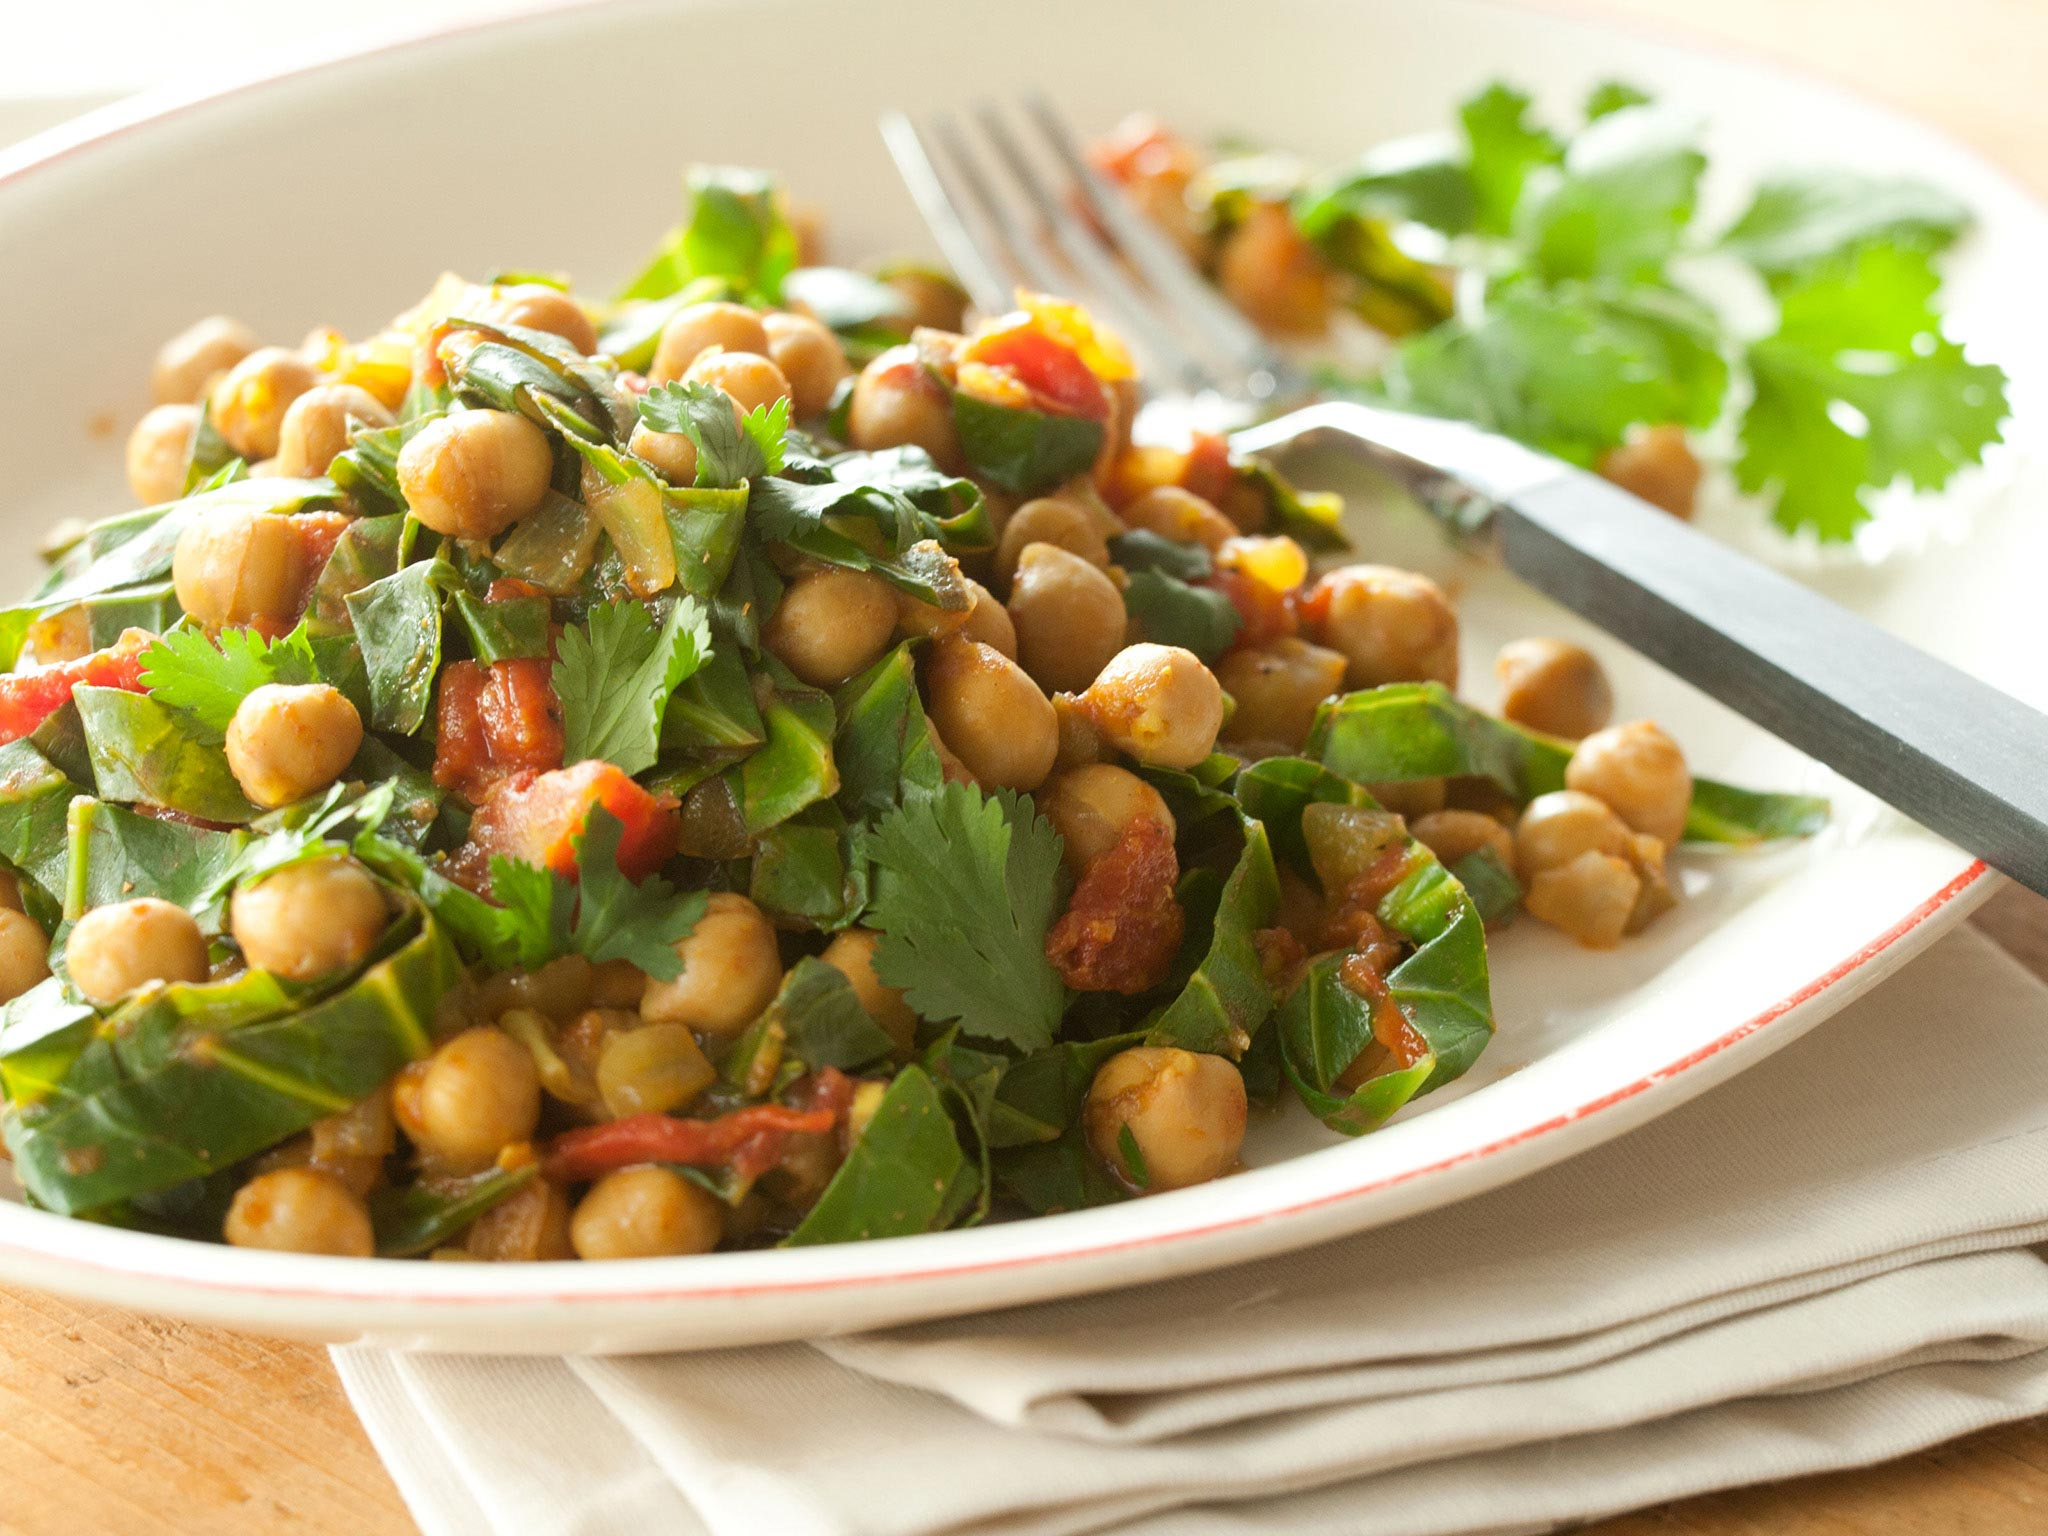 Indian-Style Spiced Garbanzos and Greens